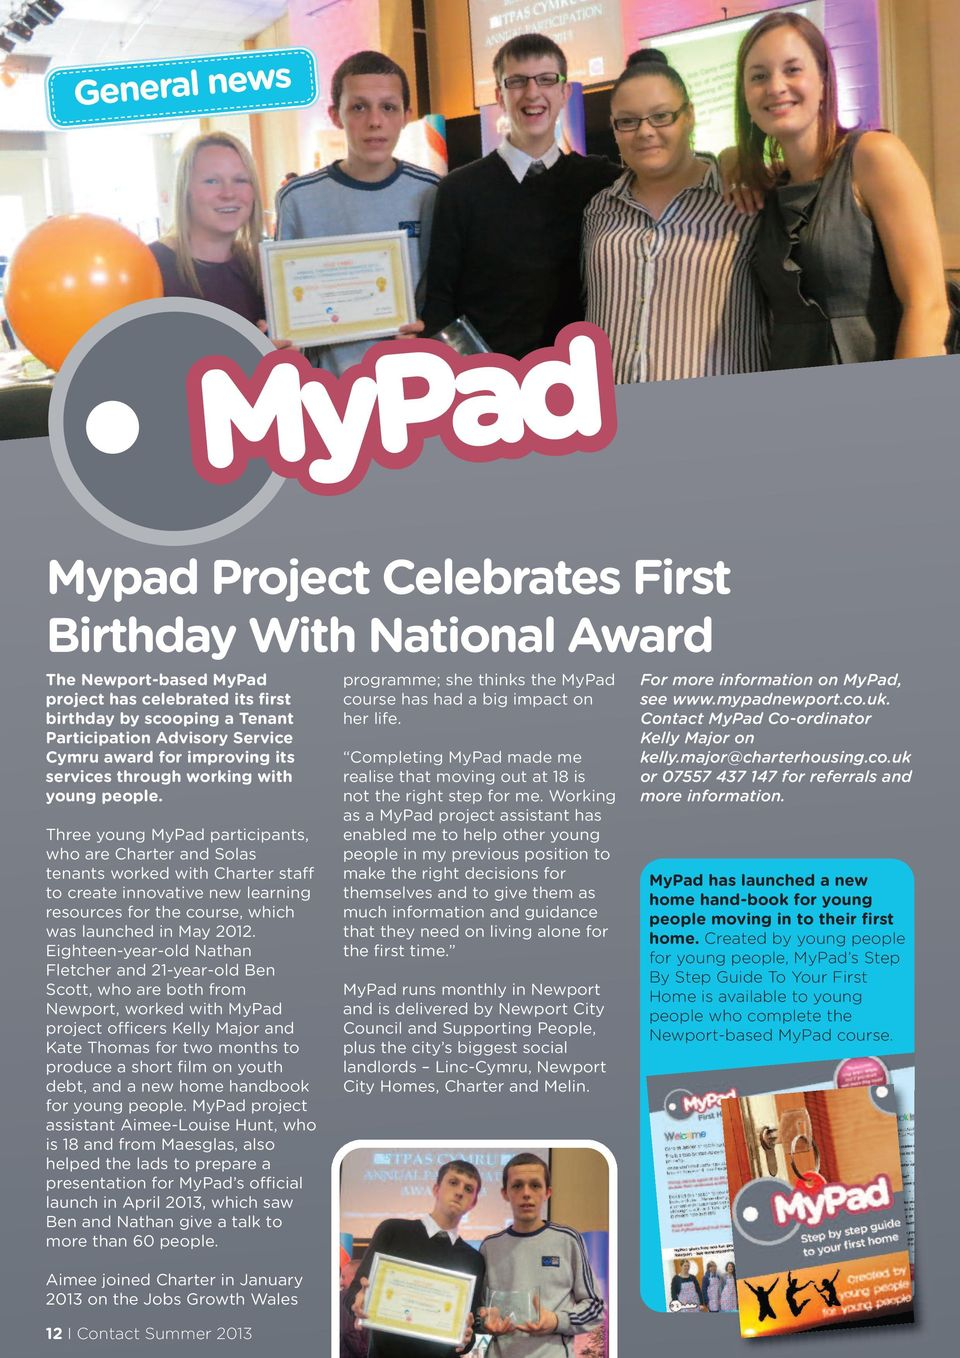 Three young MyPad participants, who are Charter and Solas tenants worked with Charter staff to create innovative new learning resources for the course, which was launched in May 2012.